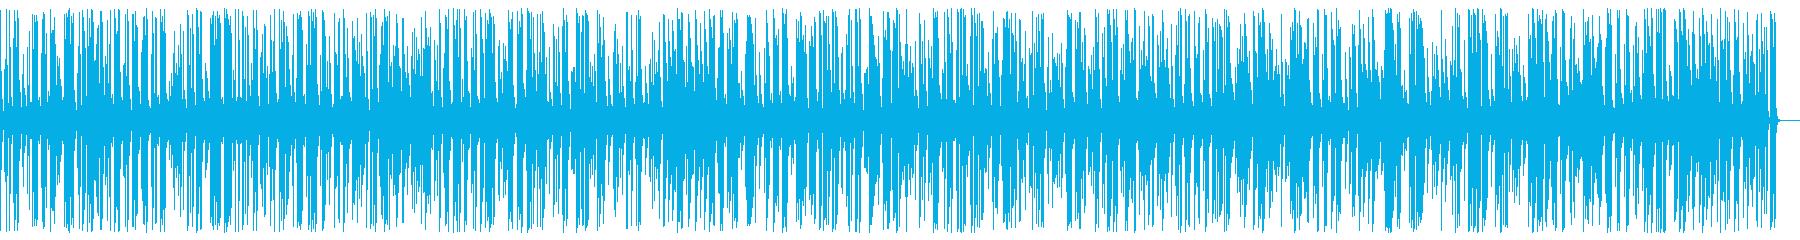 Exciting fashionable food Jazz piano BGM's reproduced waveform